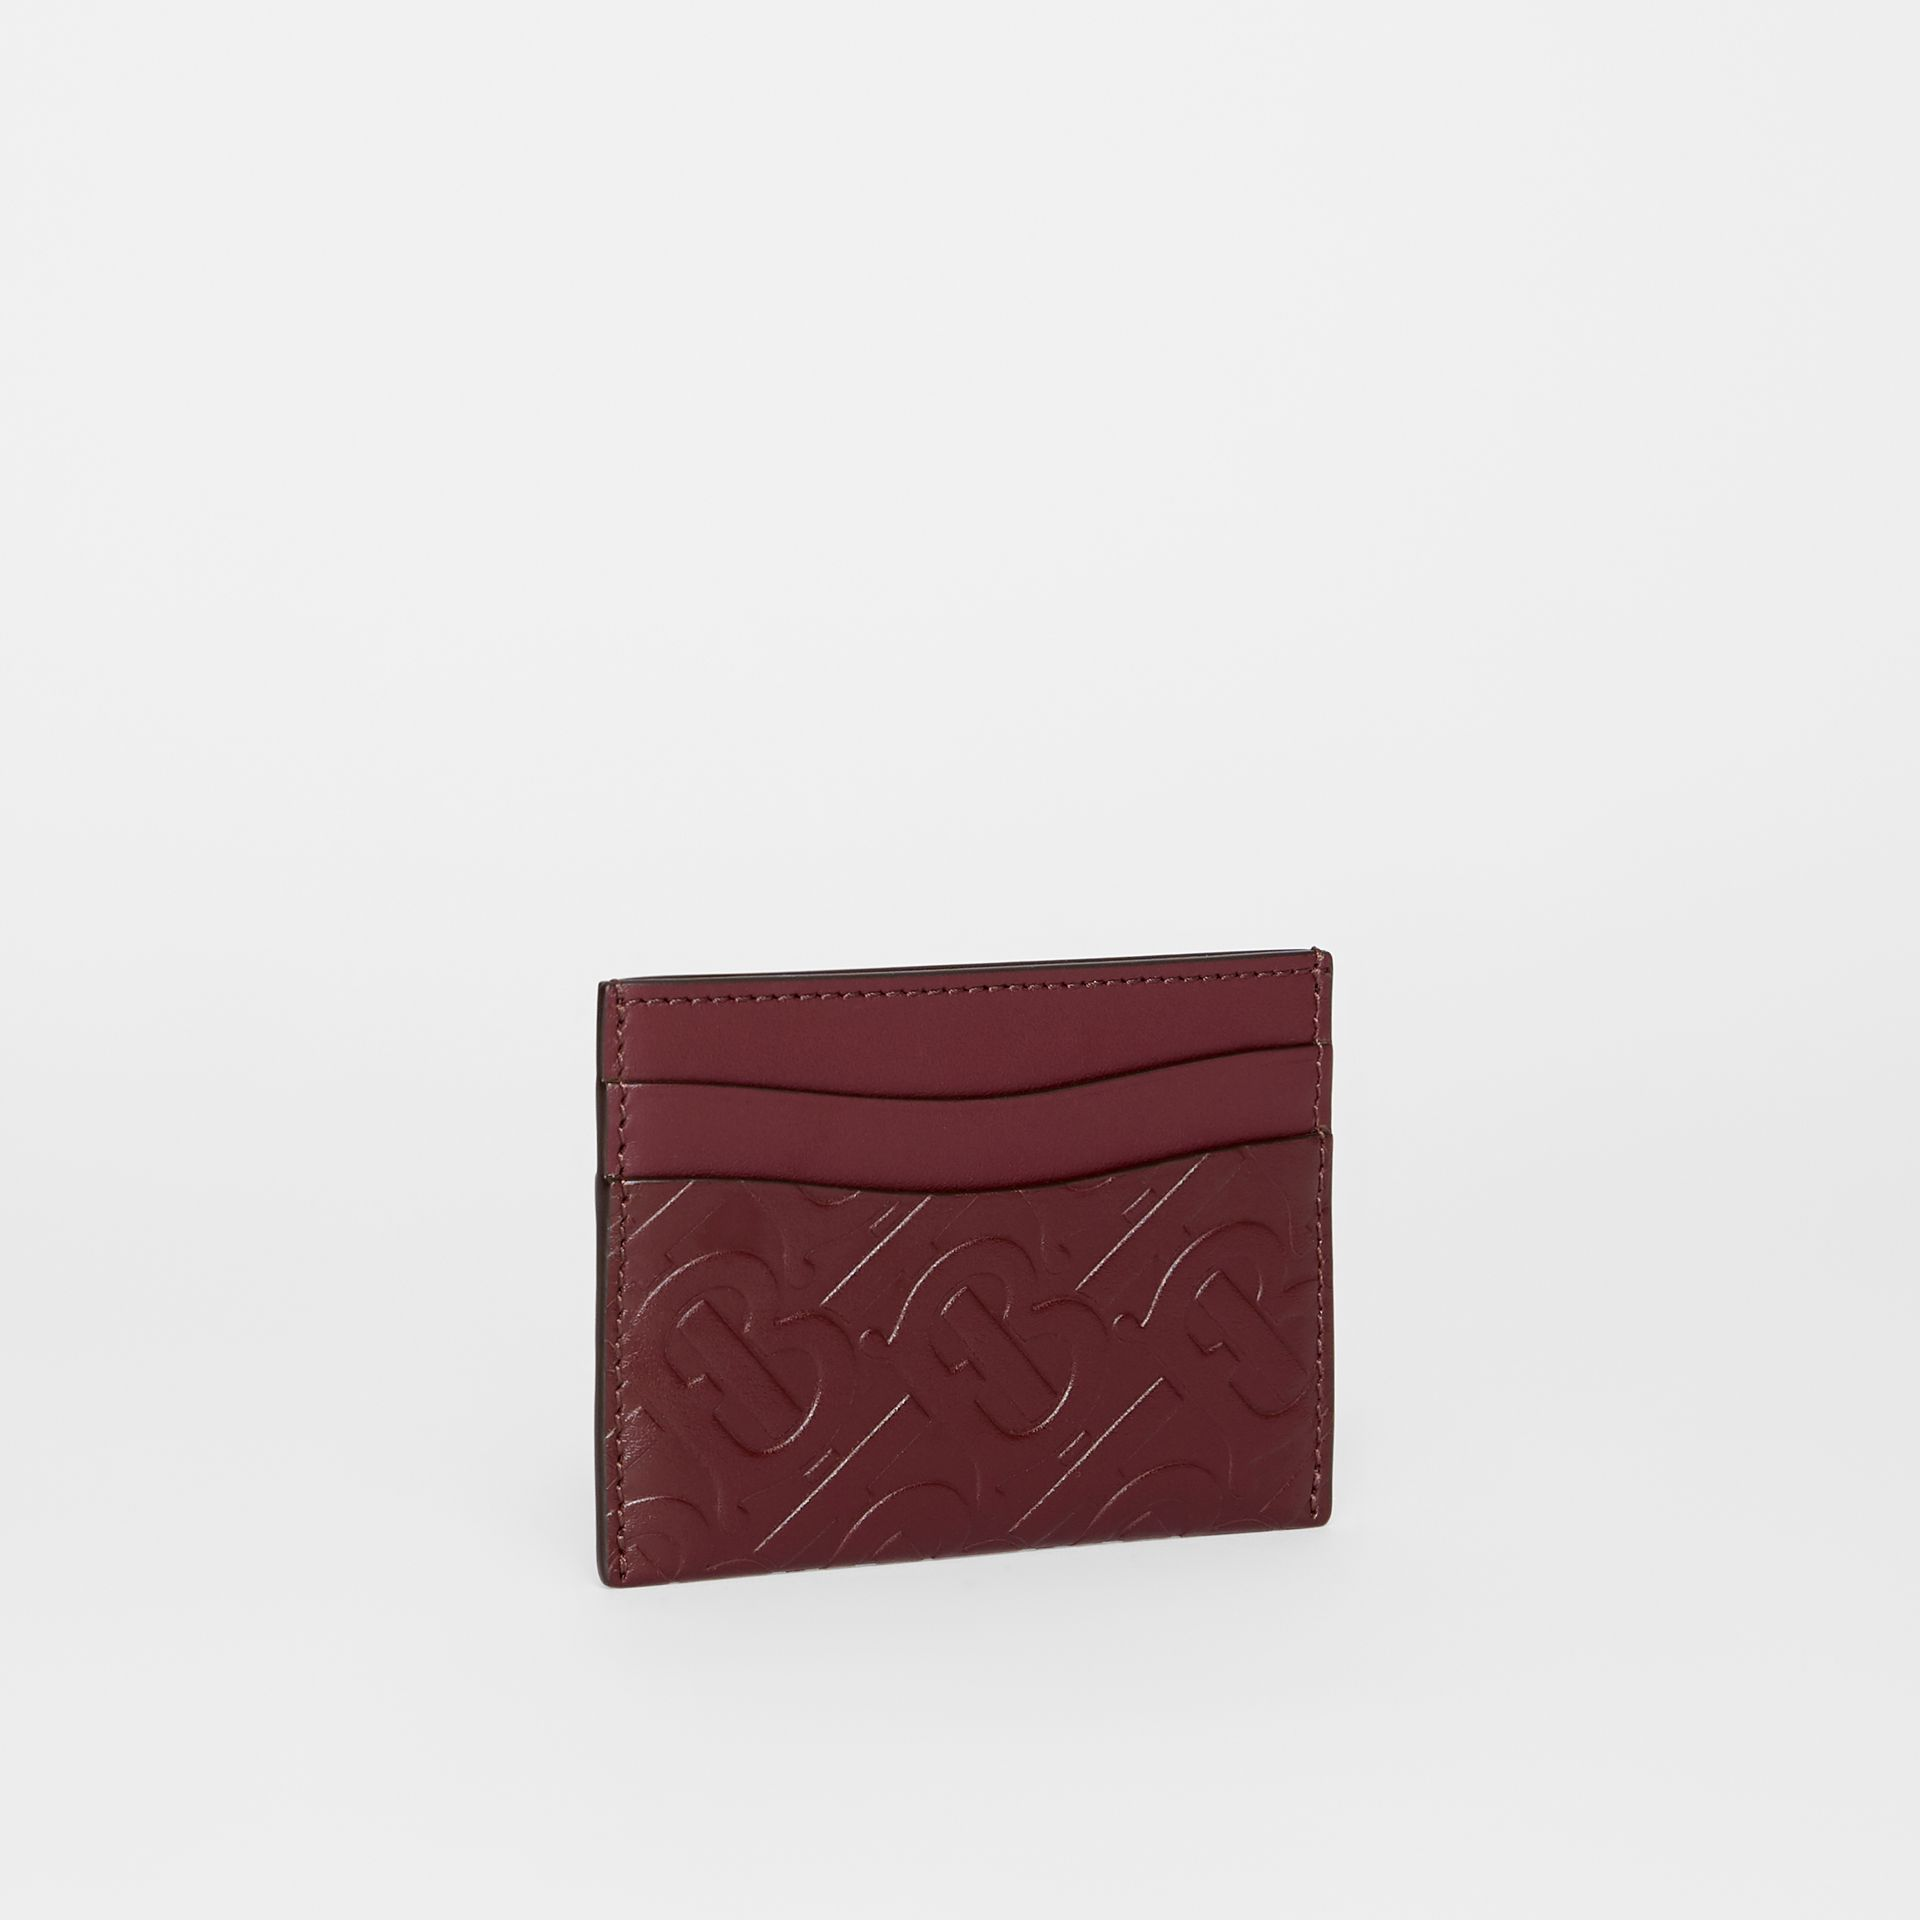 Monogram Leather Card Case in Oxblood - Women | Burberry United Kingdom - gallery image 3